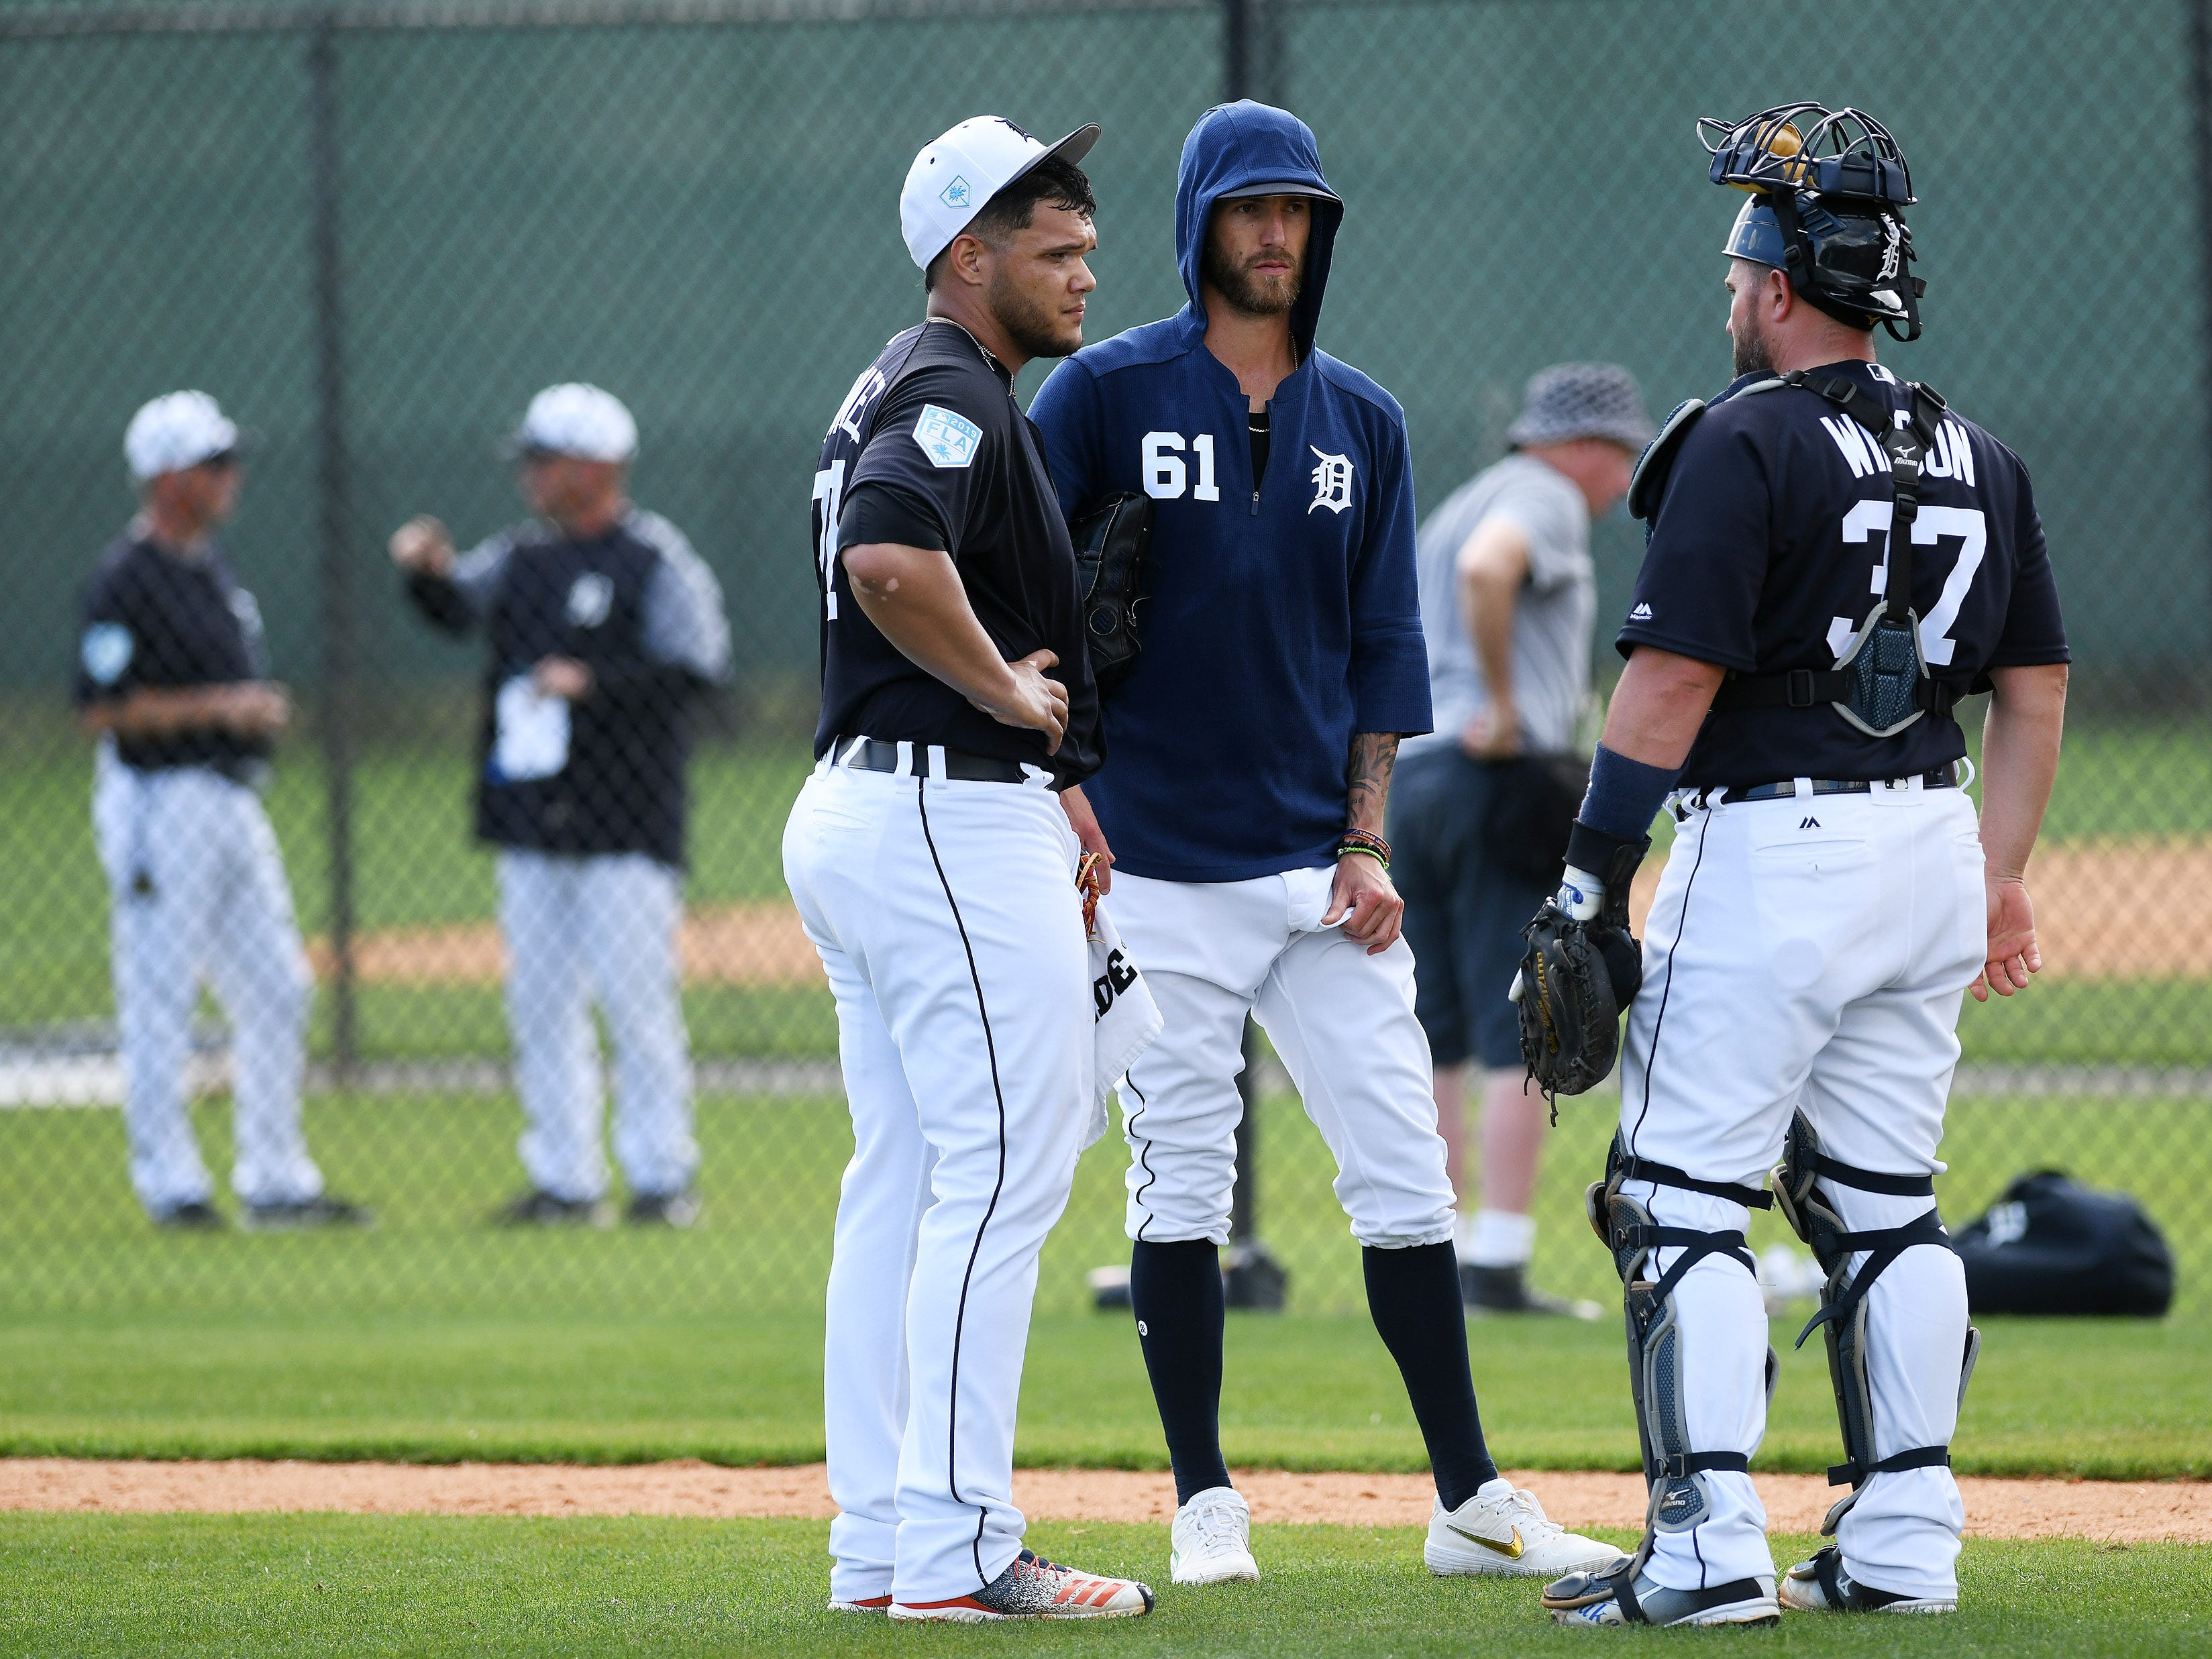 From left, Tigers pitcher Joe Jimenez talks with pitcher Shane Greene and catcher Bobby Wilson after Jimenez pitches live batting practice.